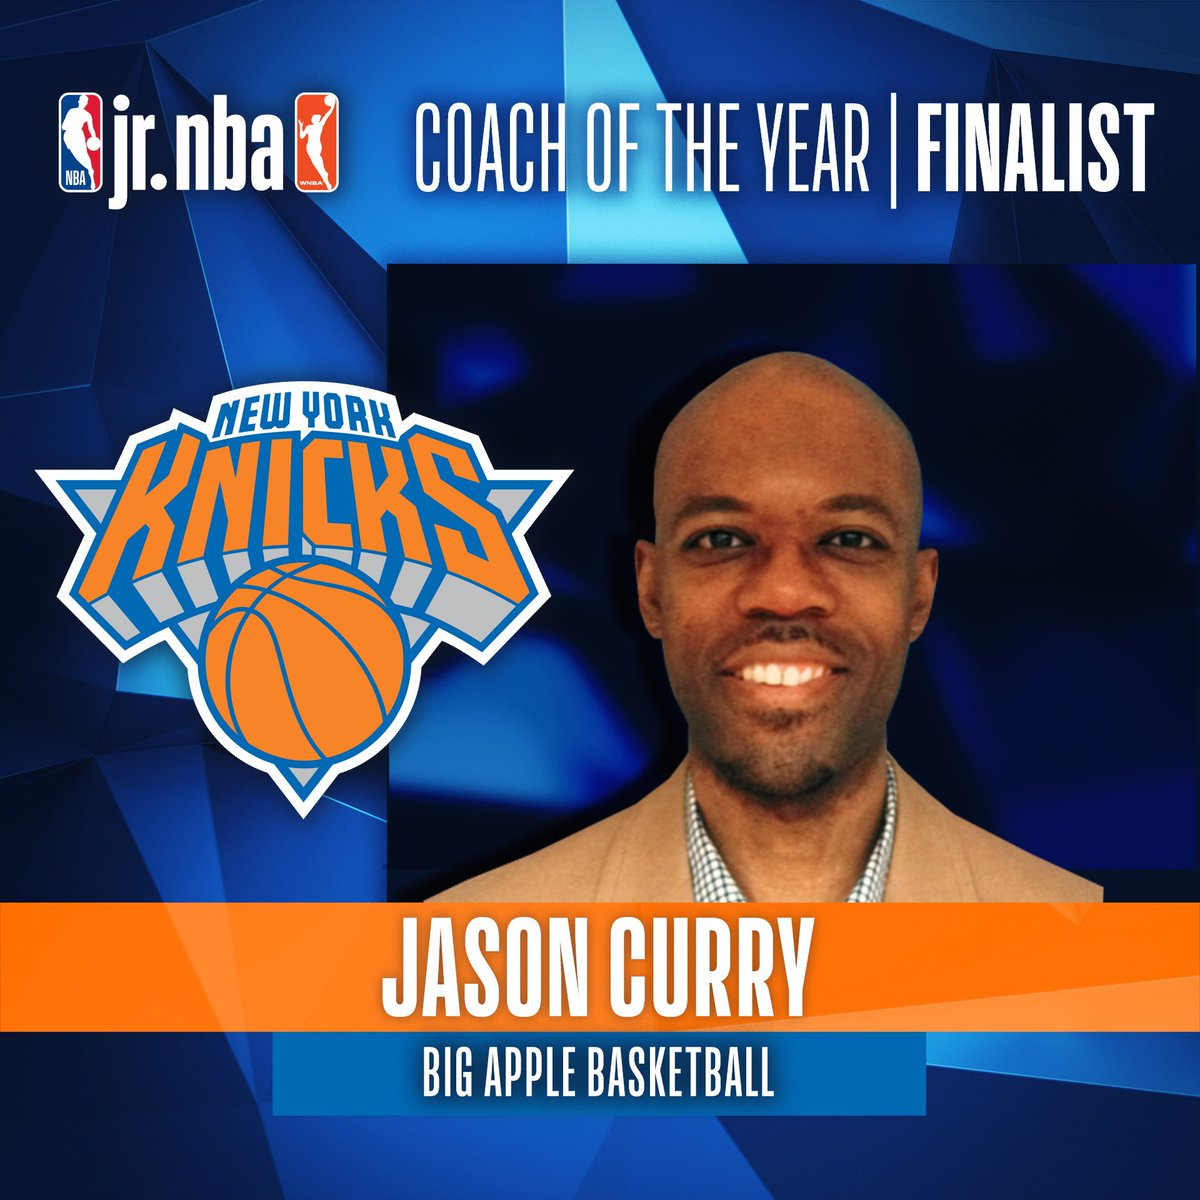 Excited to announce that our #JrKnicks Coach of the Year, Jason Curry, is a FINALIST for the @jrnba Coach of the Year award! We are so proud to have Jason represent the @nyknicks 👏 Let's go Jason!